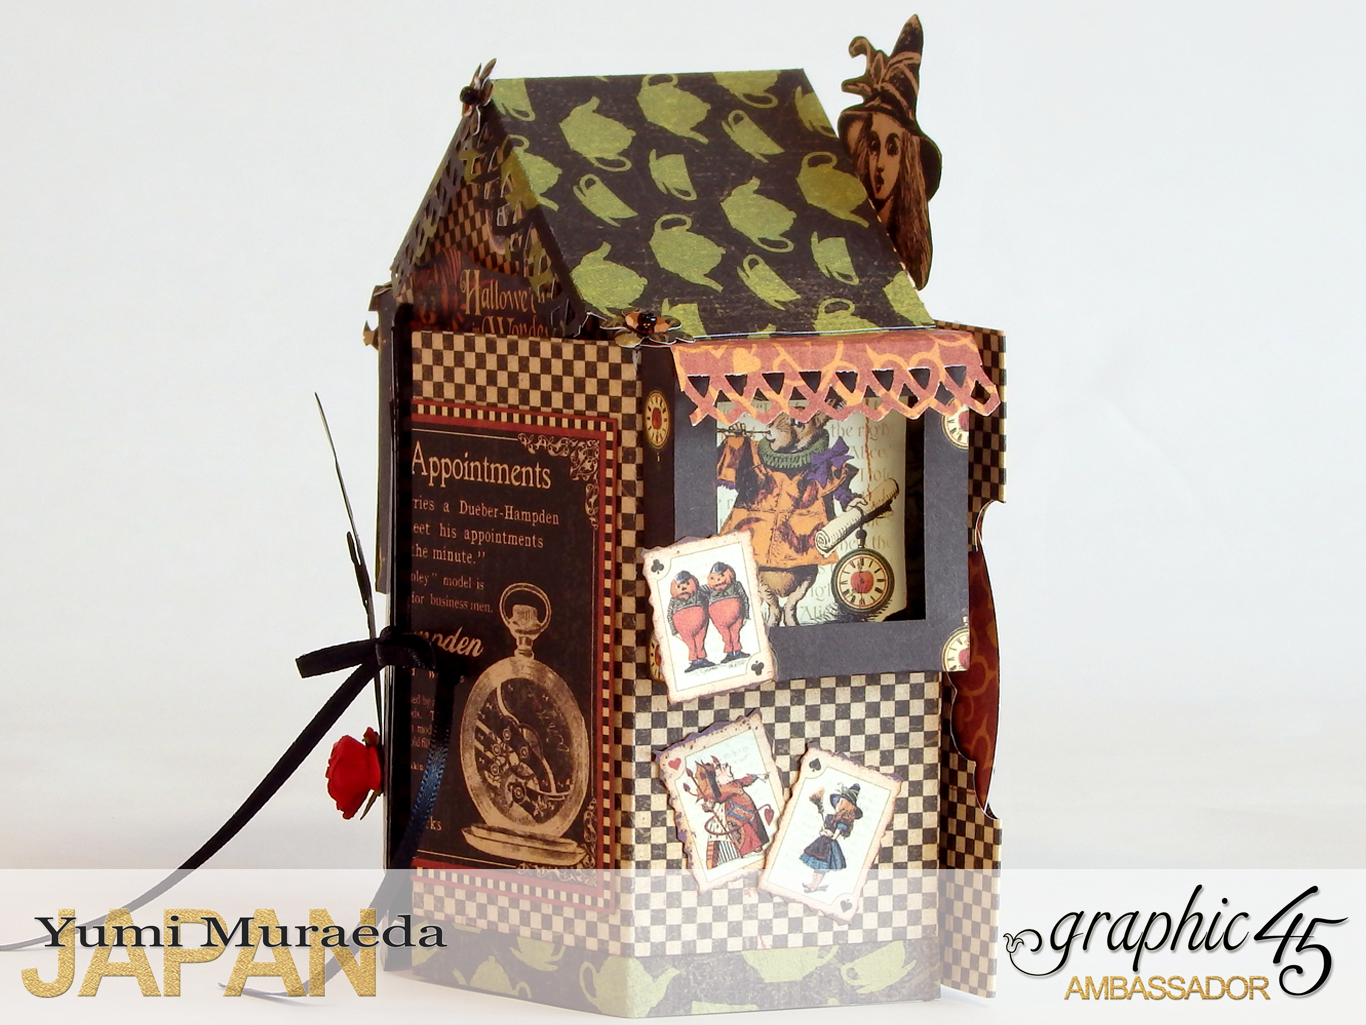 4 Alices Odd Tea HouseHalloween Wonderlandby Yumi MuraedaProduct by Graphic 45